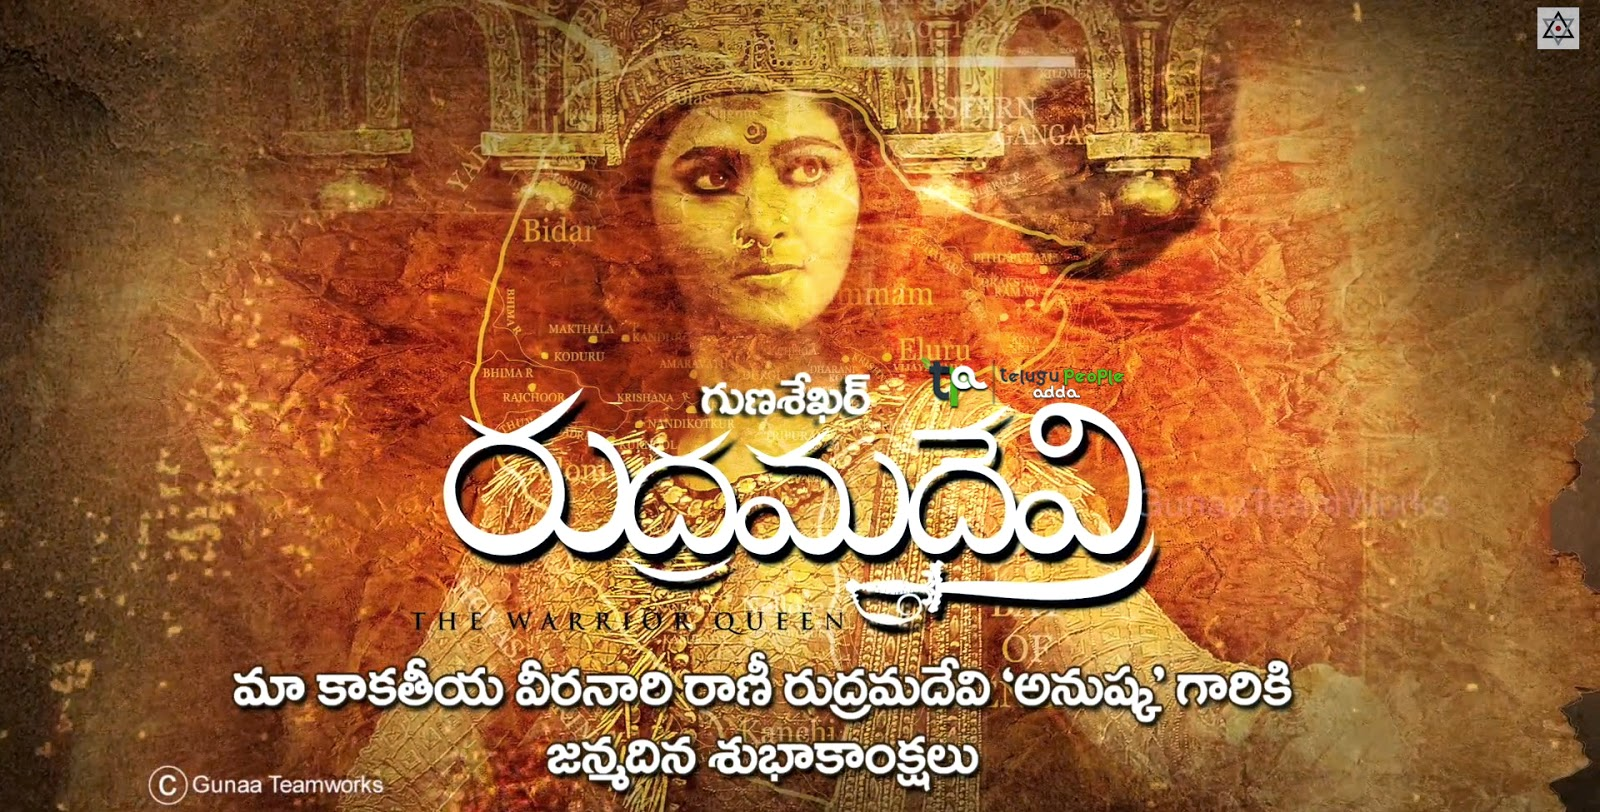 Rudhramadevi Movie Making Video | Anushka Shetty | Gunasekhar